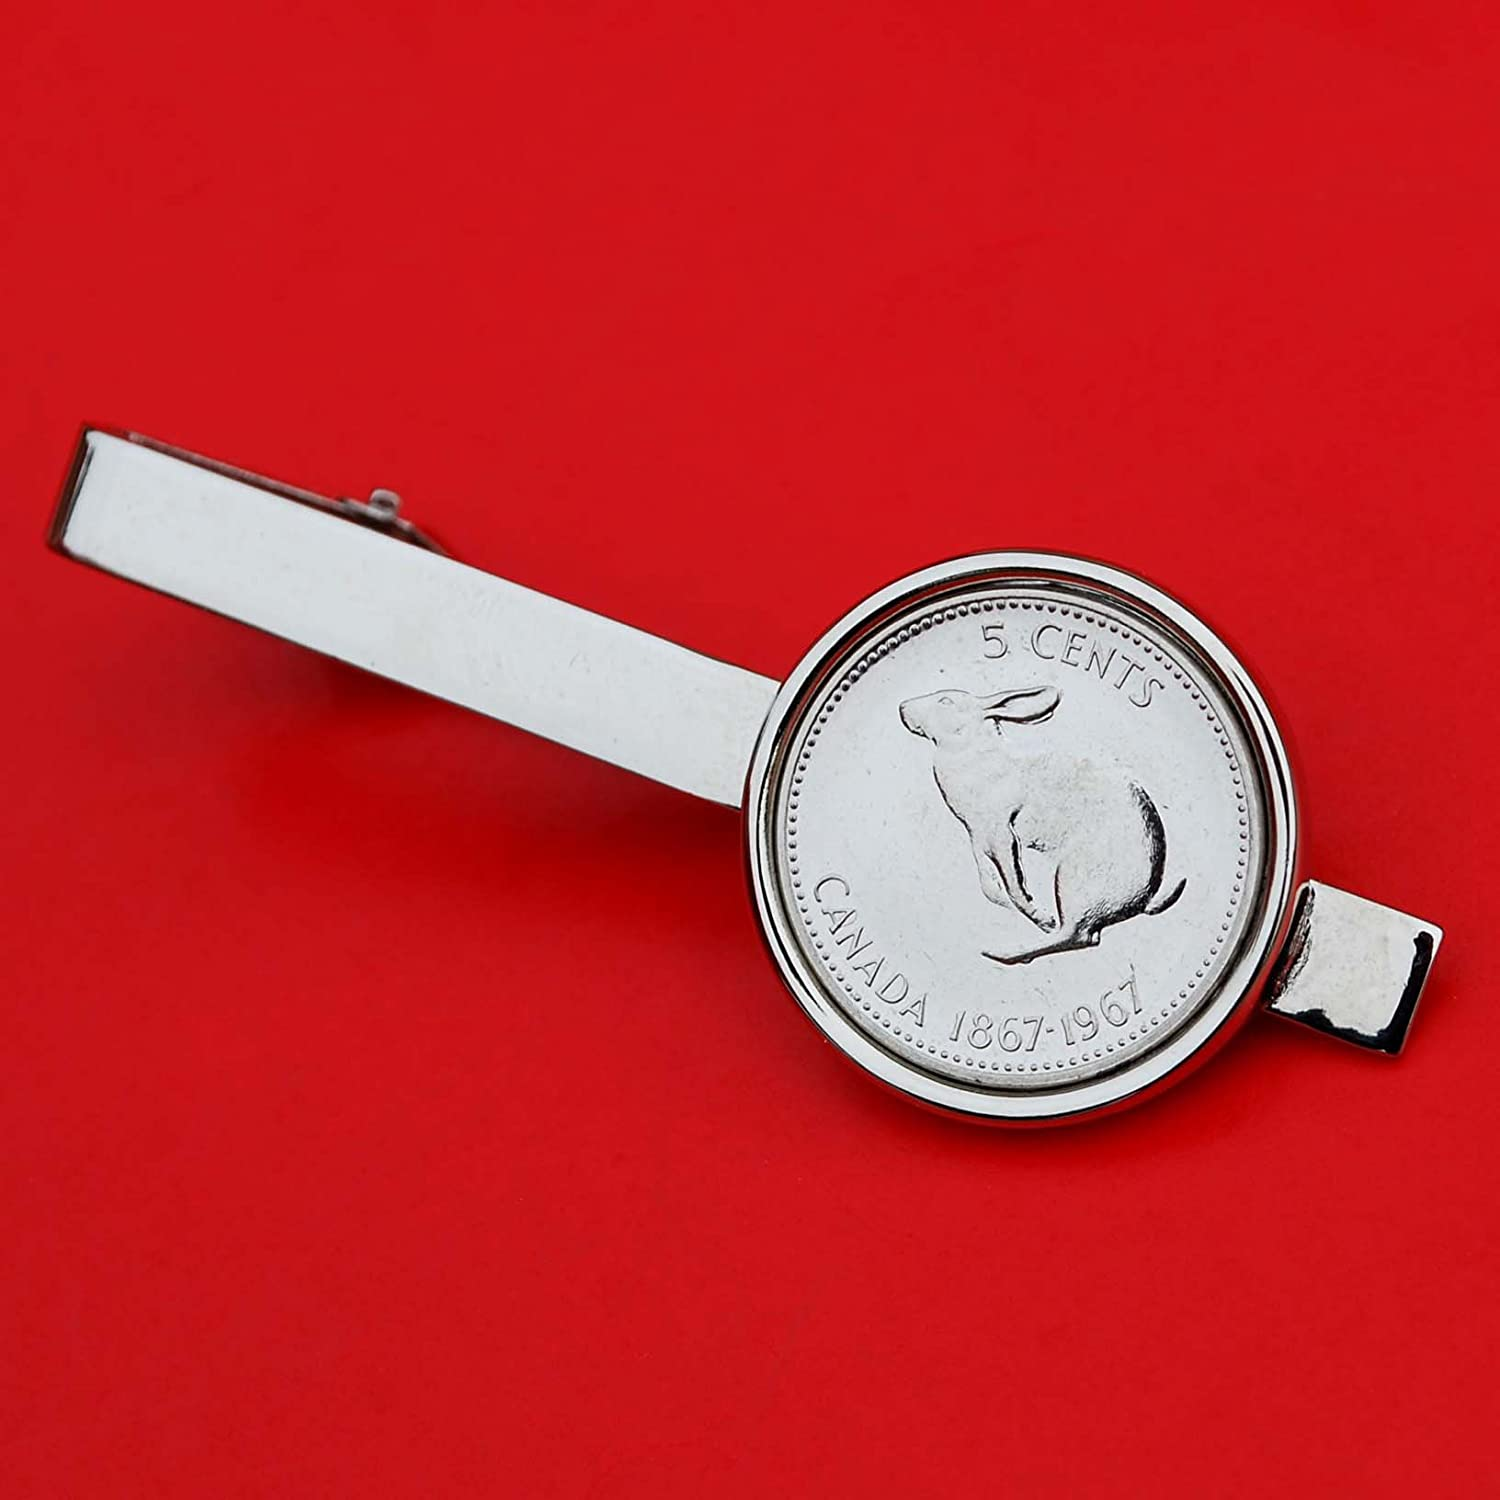 Canada 1967 Five Cents Gem BU Uncirculated Nickel Coin Silver Plated Tie Clip Clasp Bar - Bounding Snowshoe Rabbit